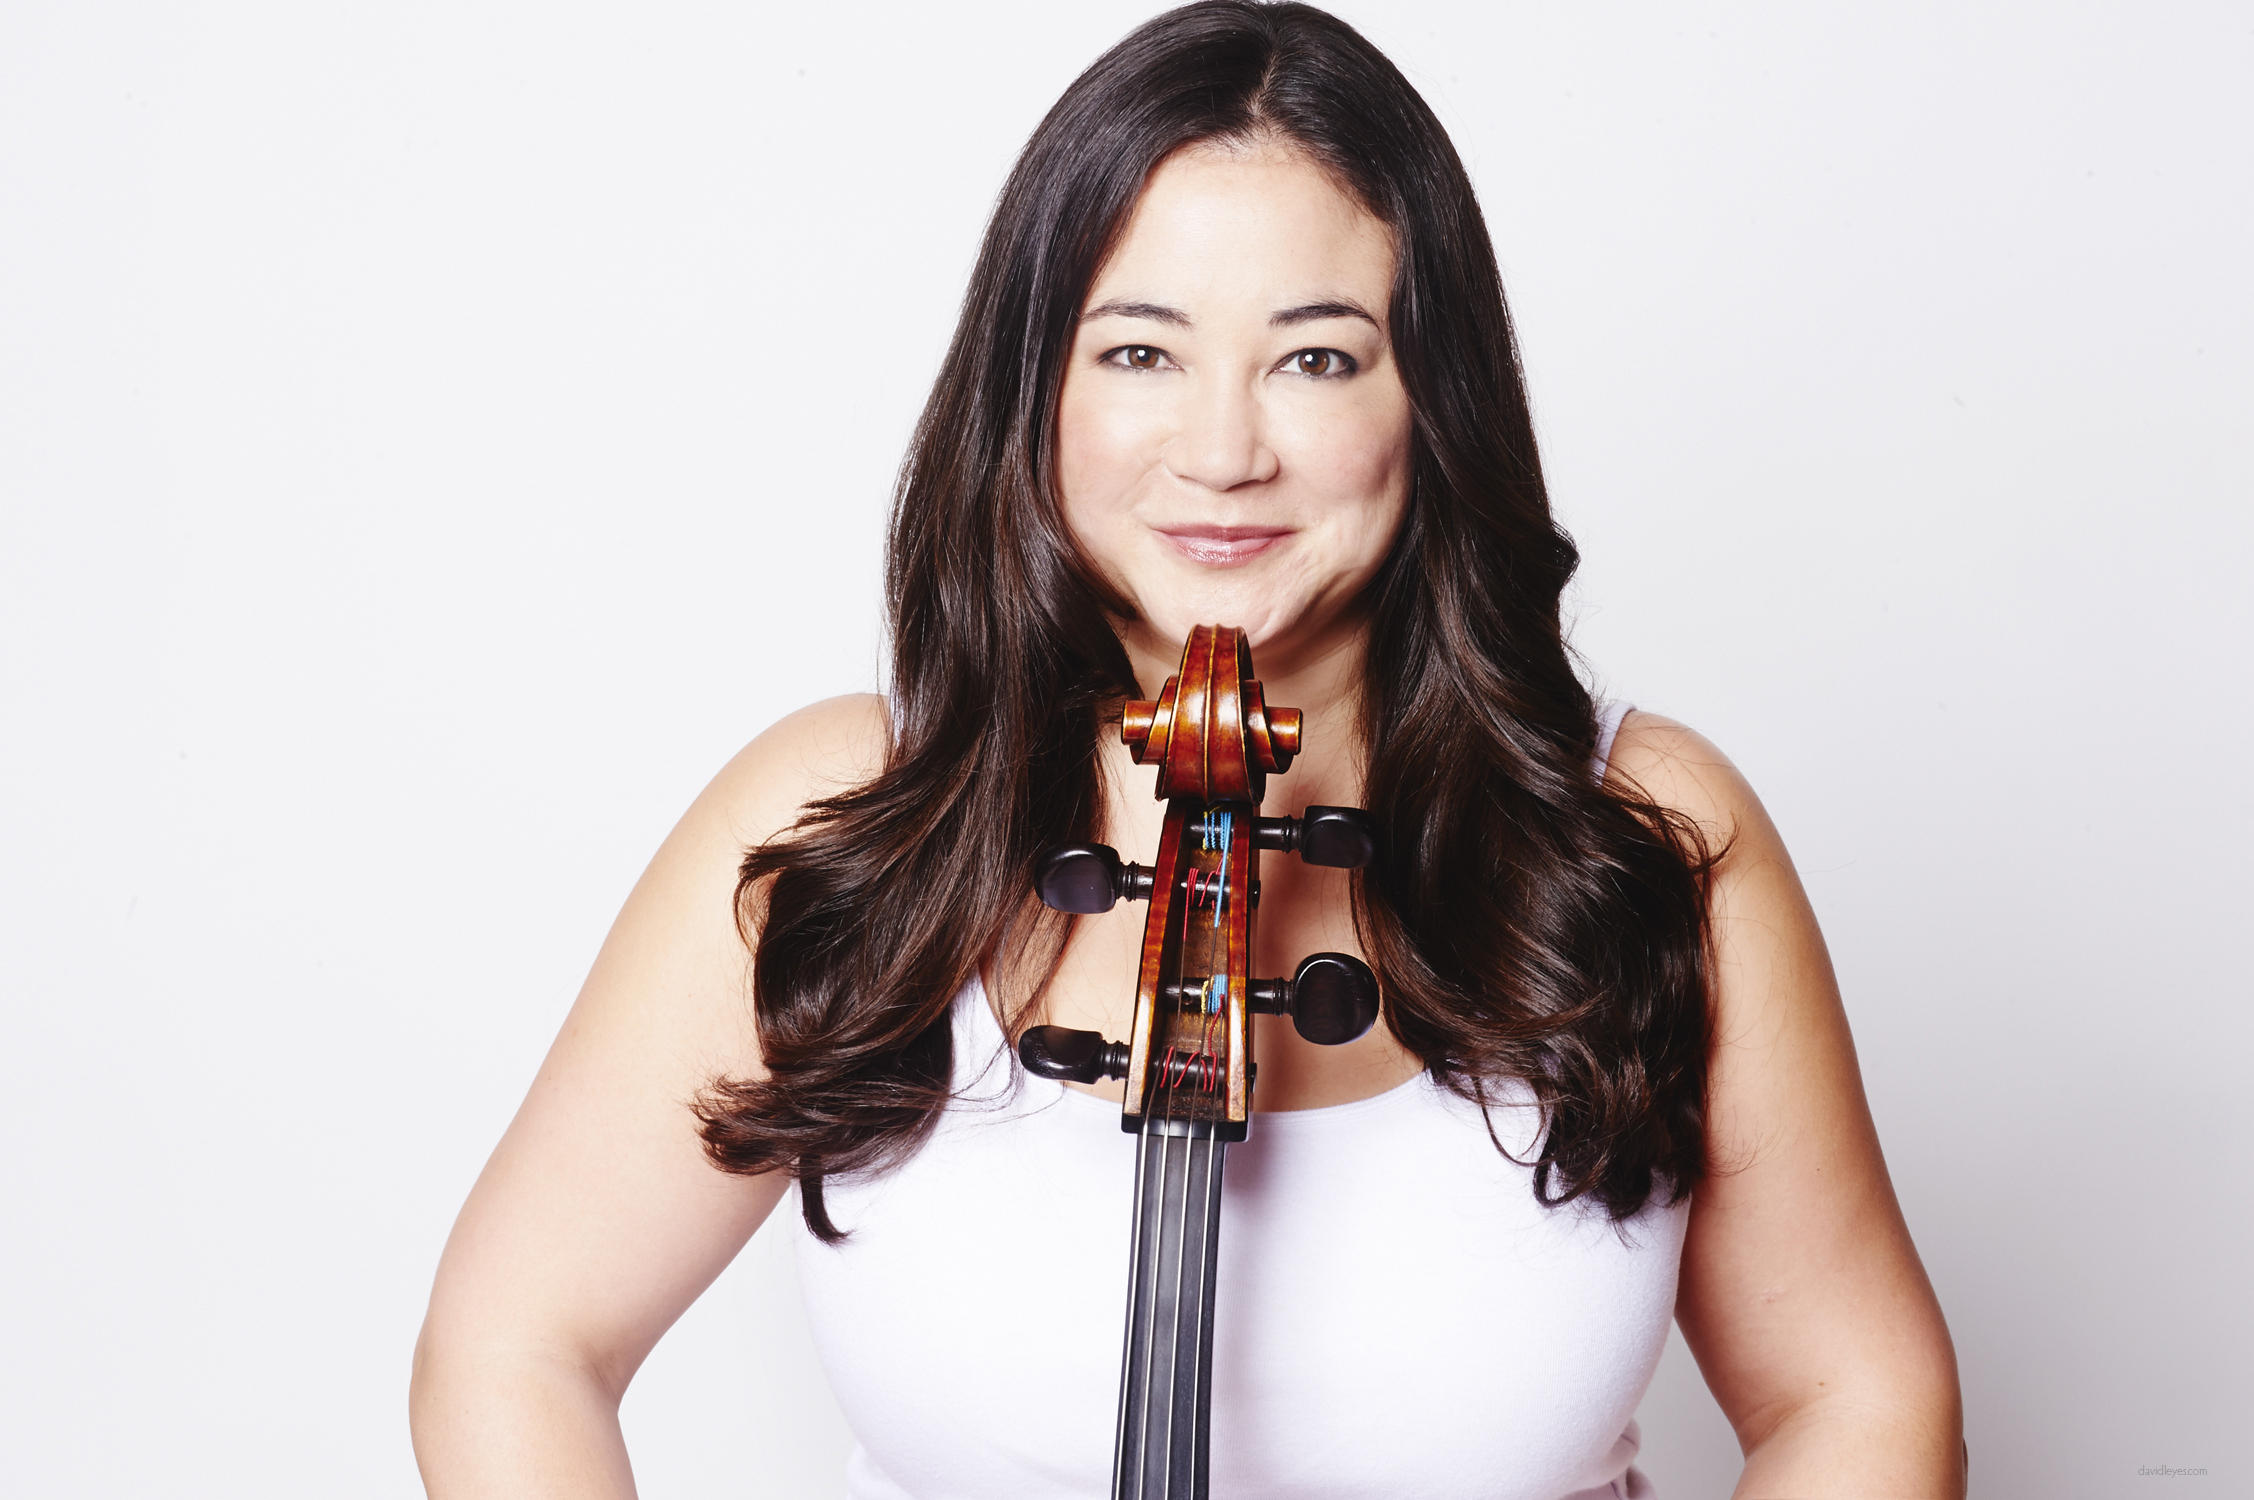 Cellist Rachel Mercer hosts CBC Radio 2's This is My Music